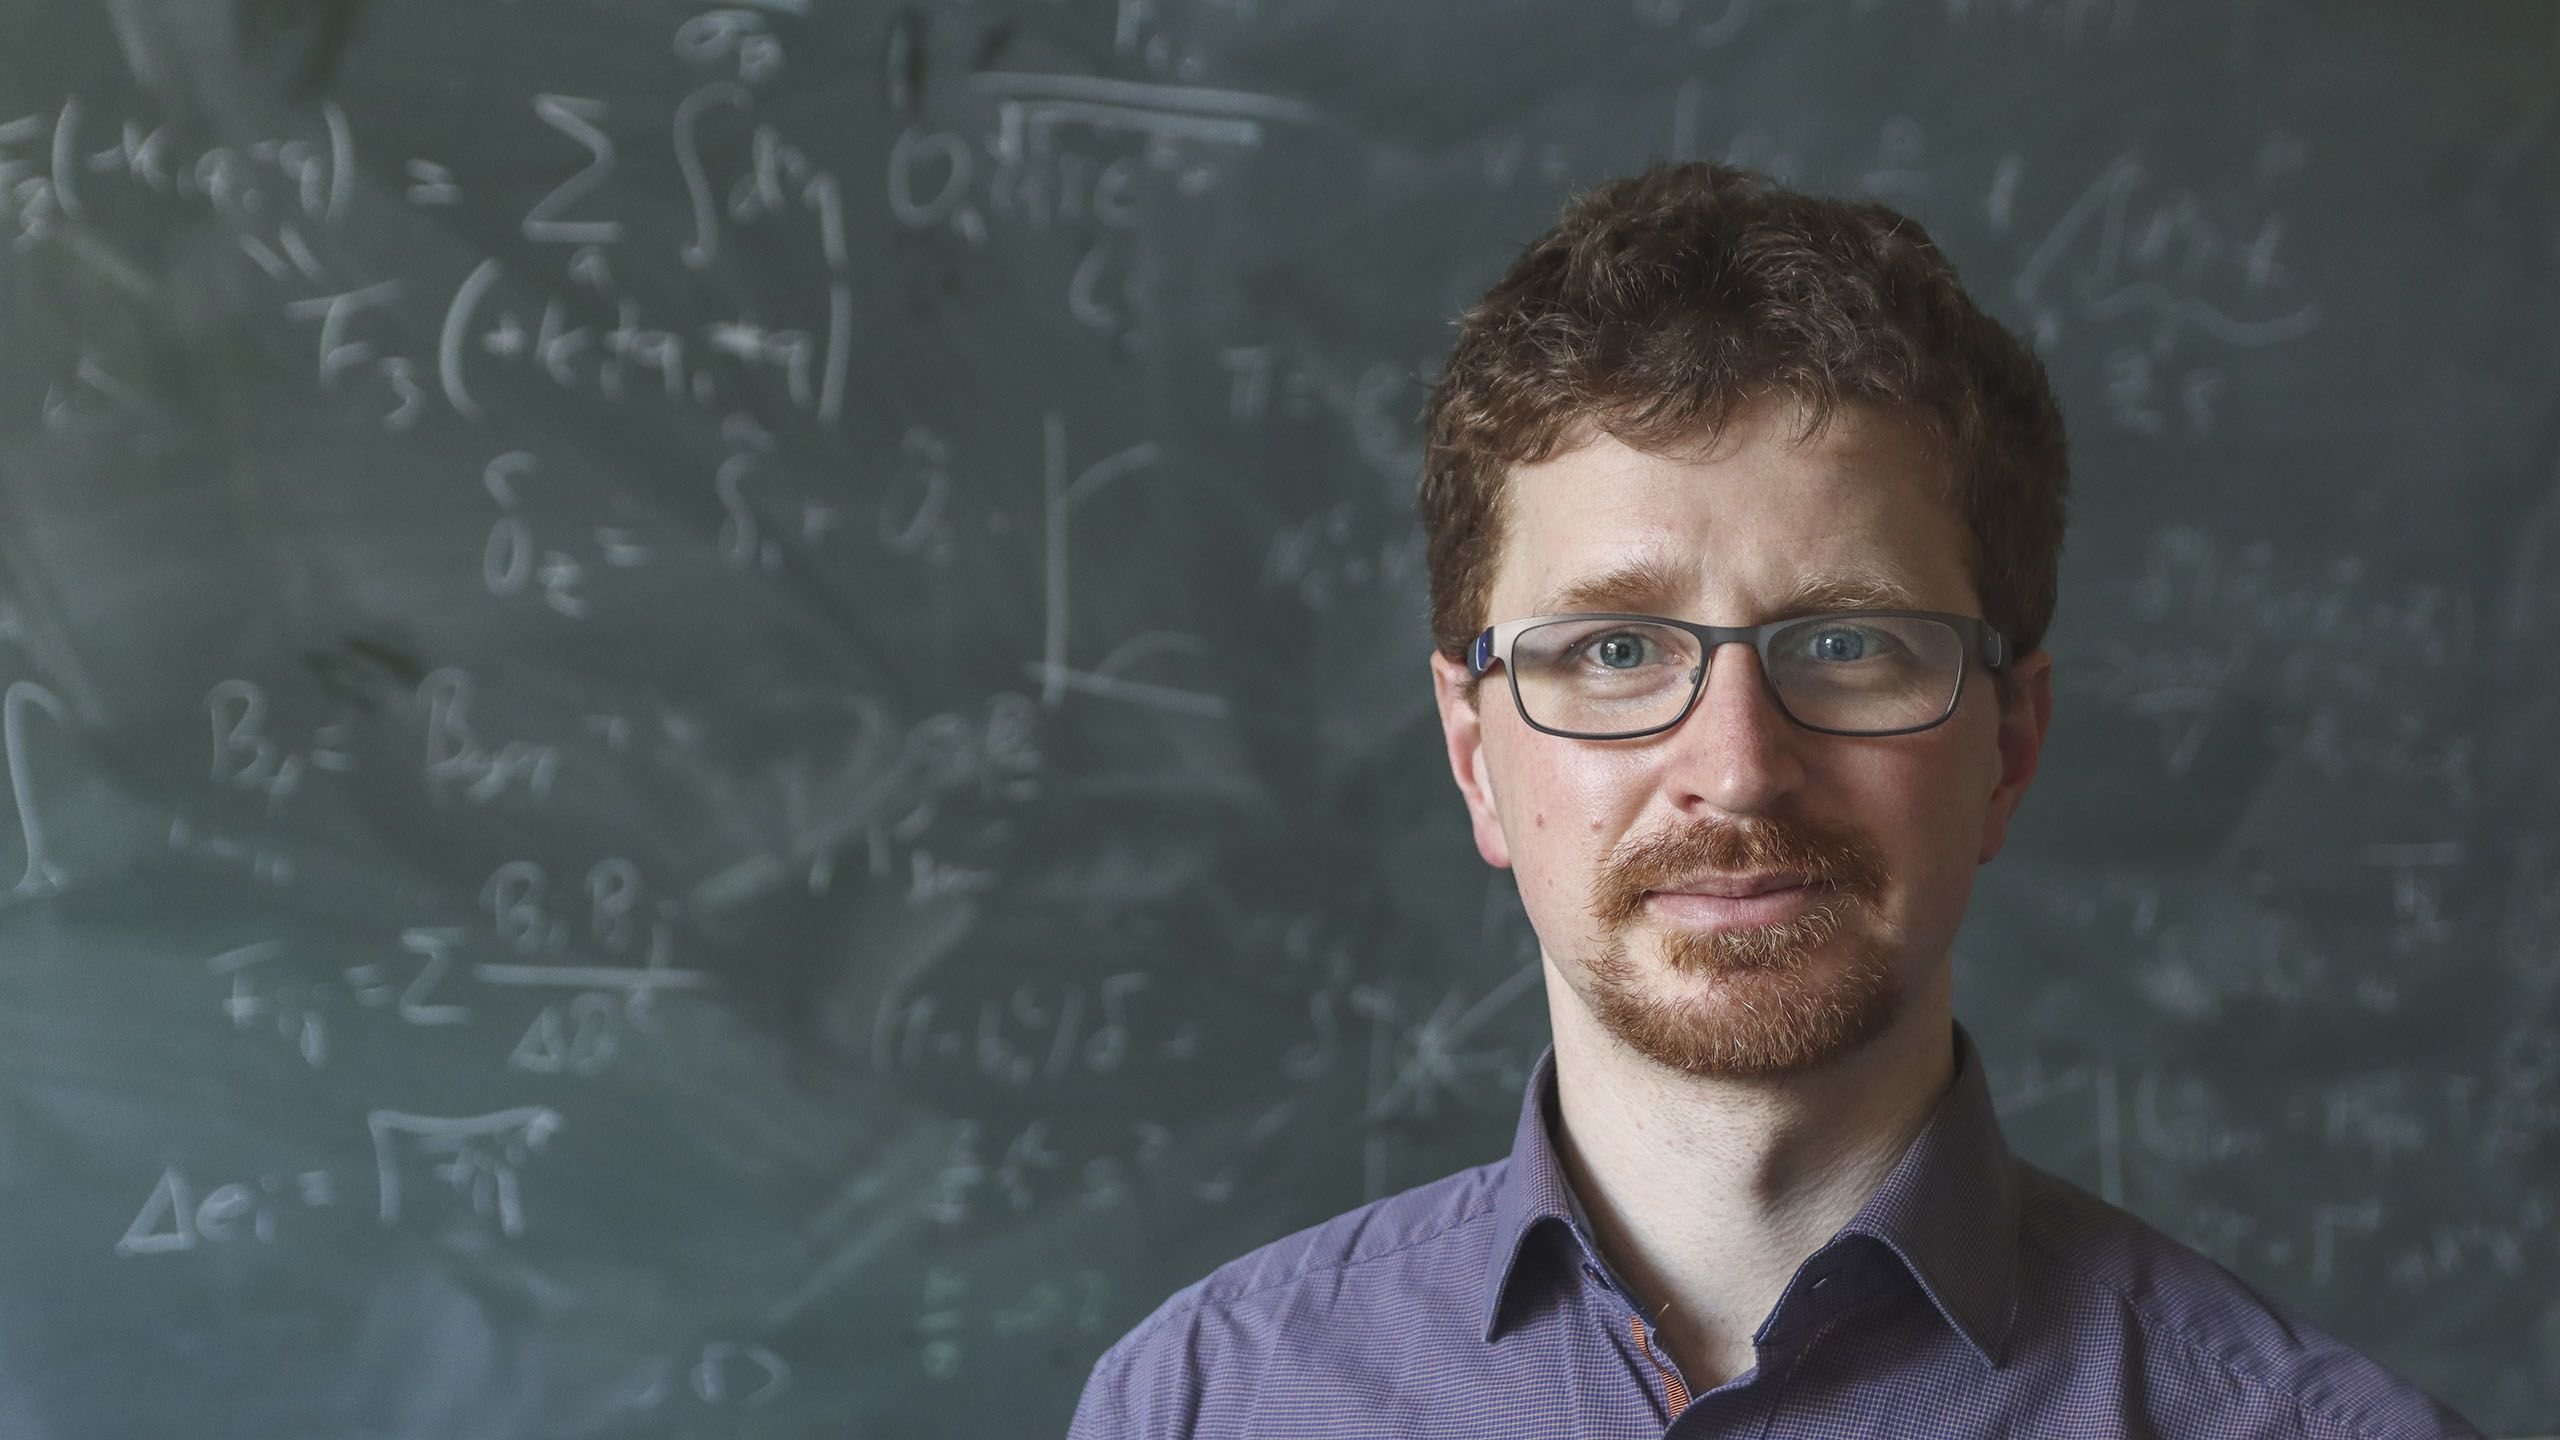 Dr Tobias Baldauf standing in front of a blackboard with equations written on it in chalk